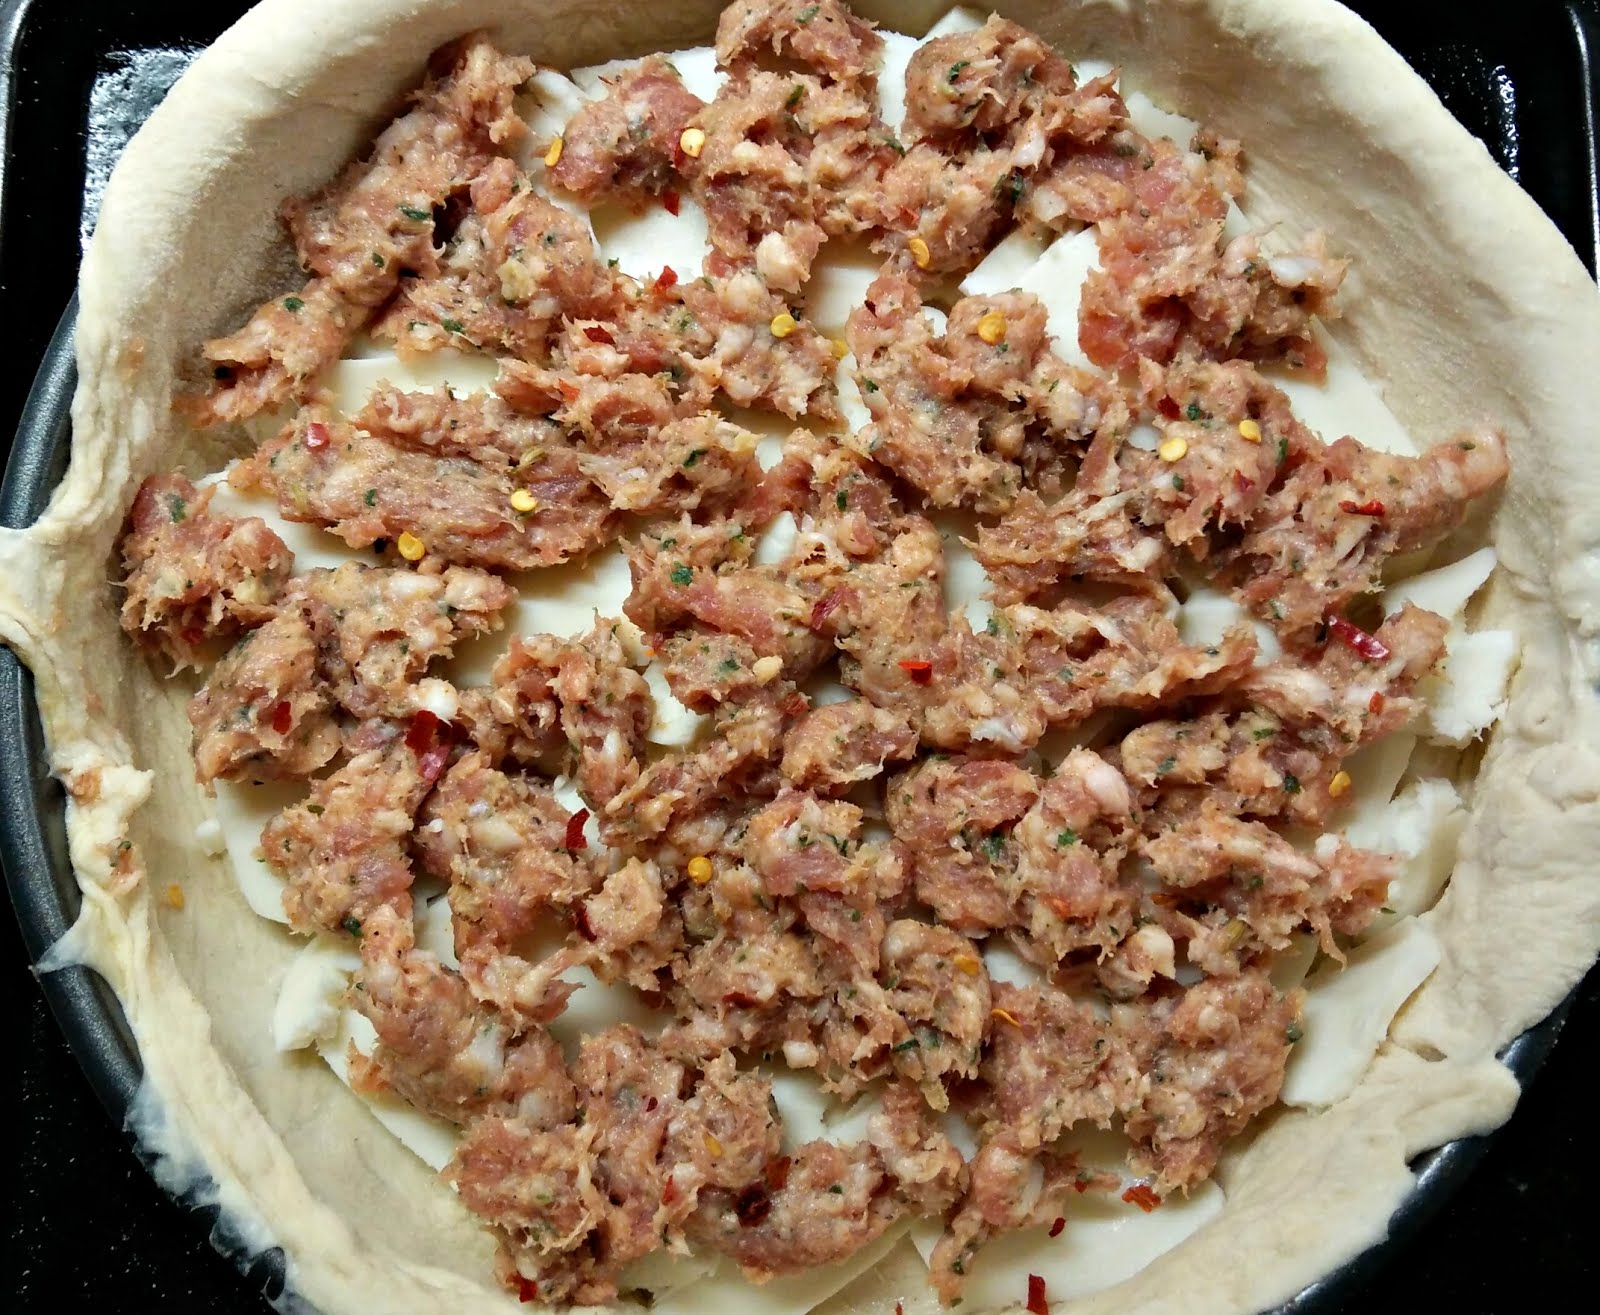 Chicago Style Pizza with Spicy Sausage filling recipe